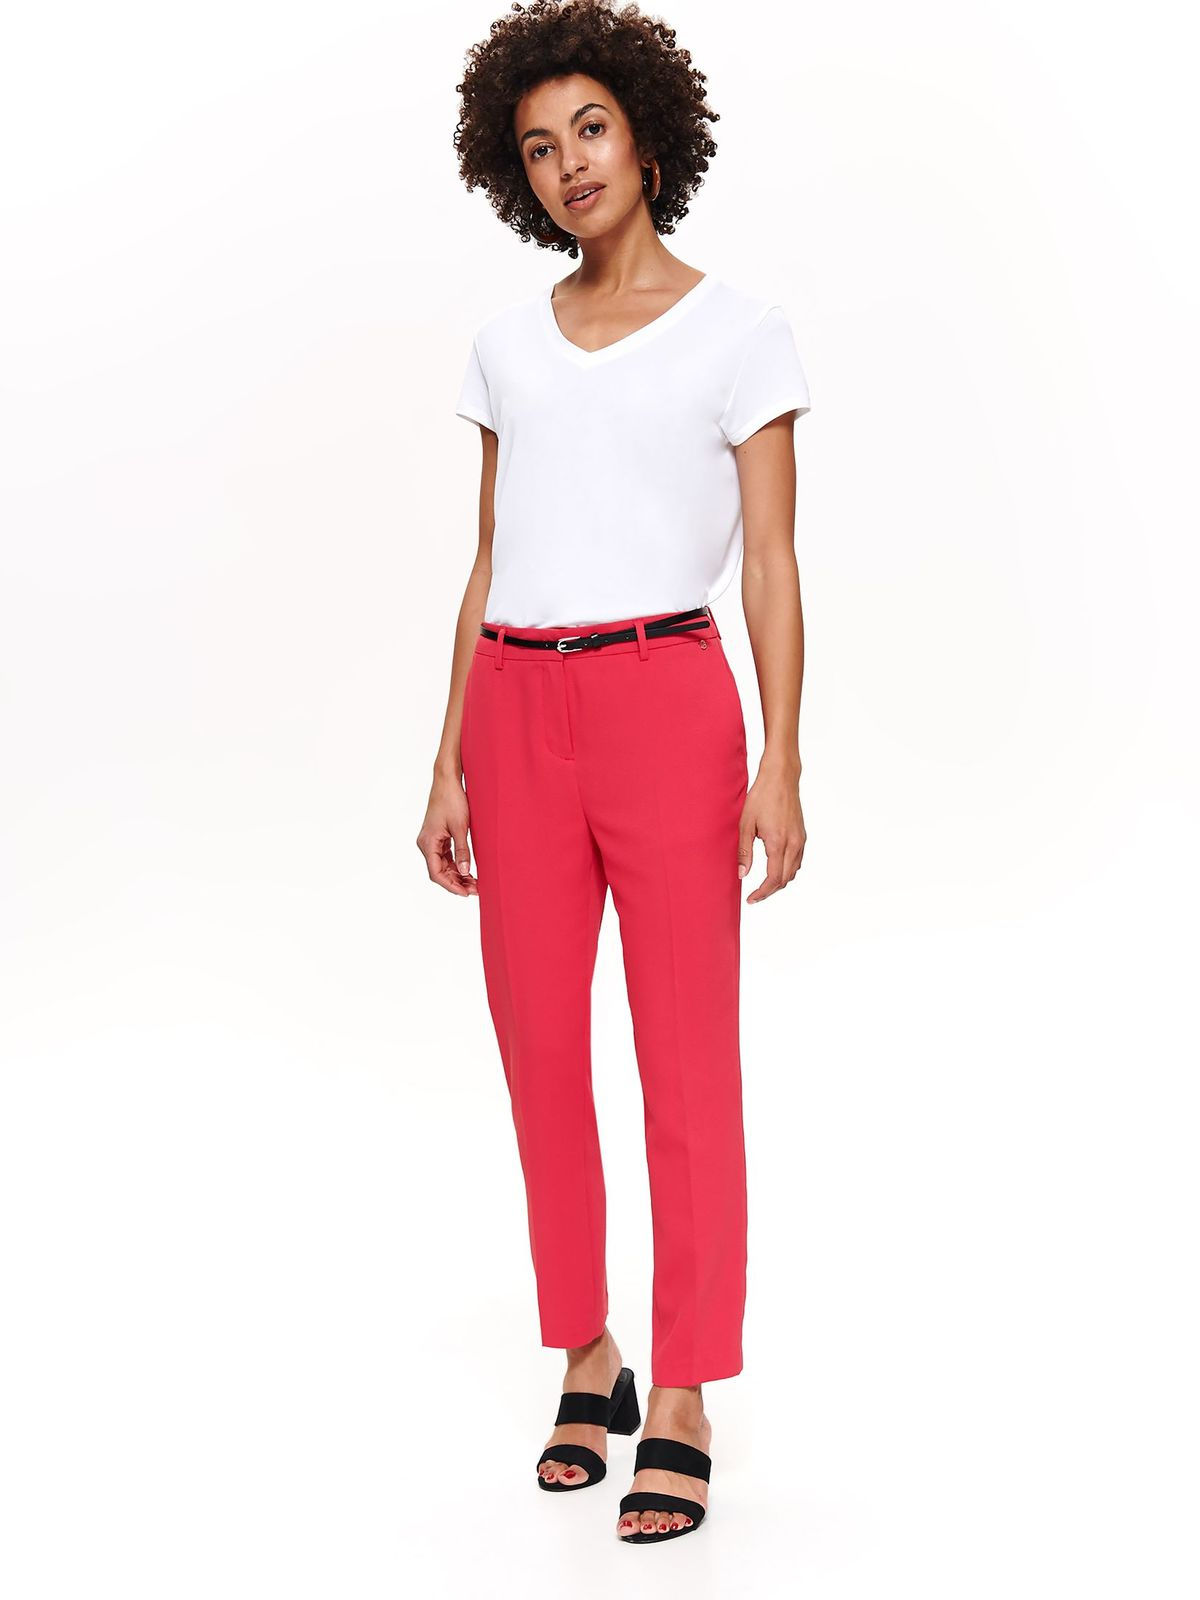 Top Secret darkpink elegant straight trousers with medium waist accessorized with belt slightly elastic fabric